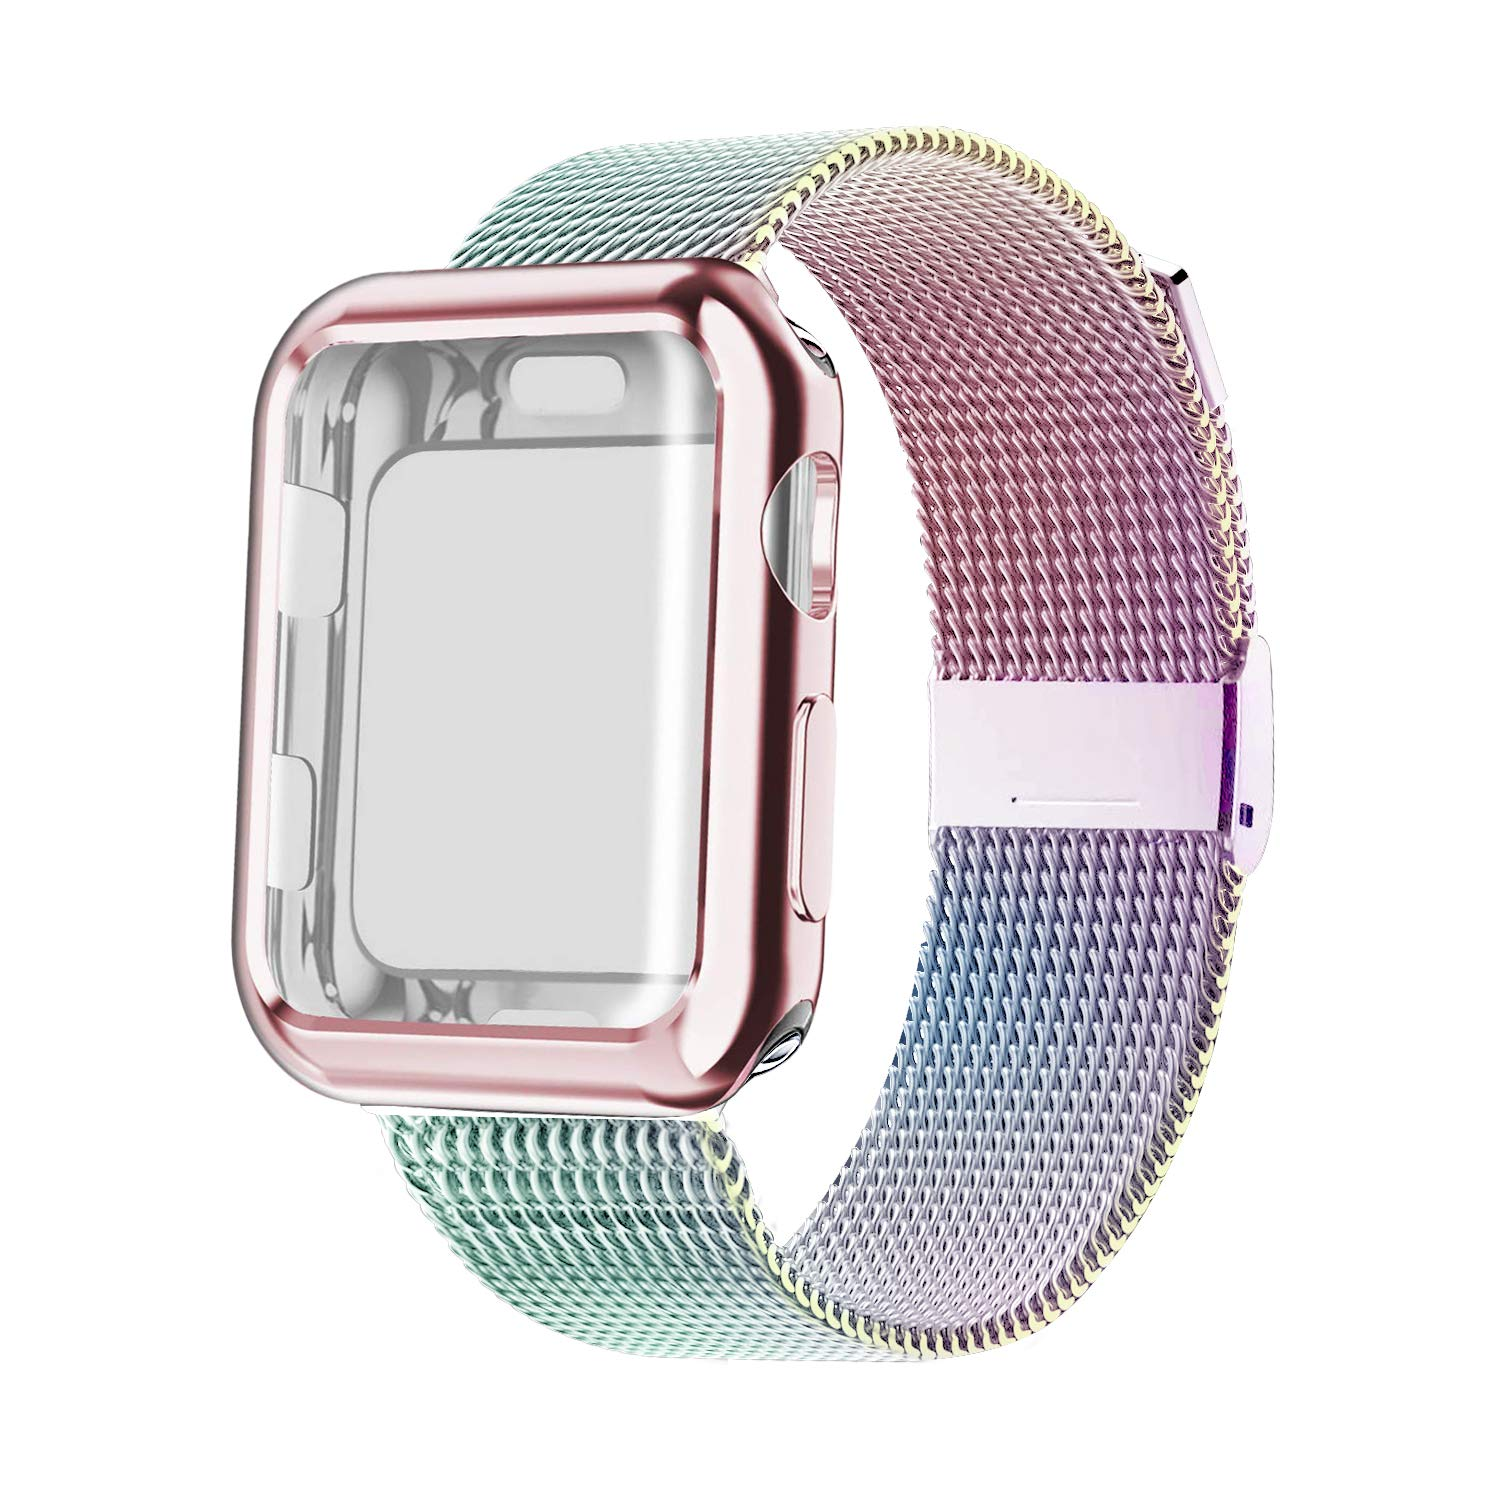 YC YANCH Compatible with Apple Watch Band 38mm with Case, Stainless Steel Mesh Loop Band with Apple Watch Screen Protector Compatible with iWatch Apple Watch Series 1/2/3/4 (38mm Colorful) by YC YANCH